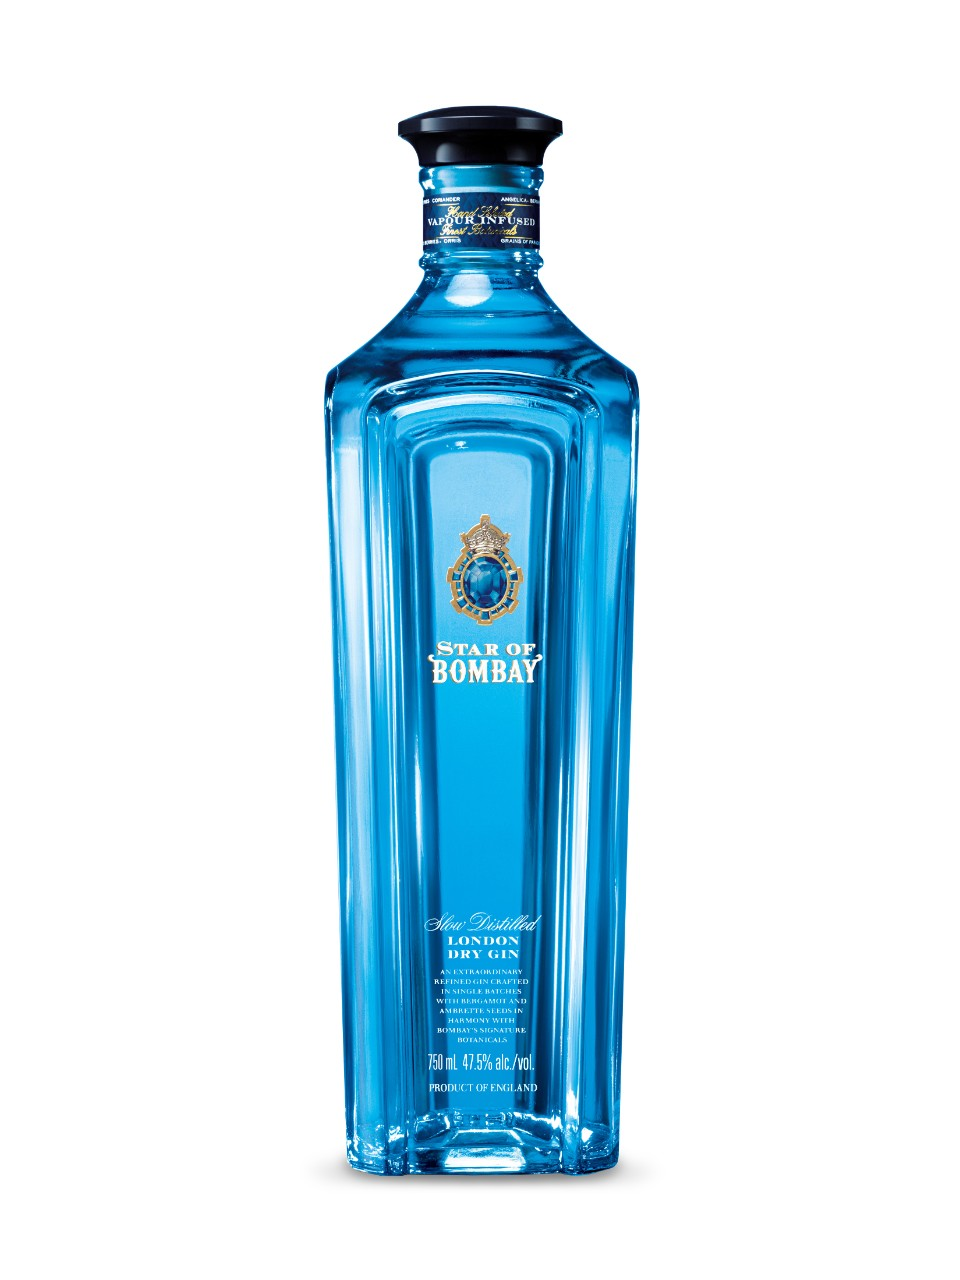 Star Of Bombay London Dry Gin from LCBO